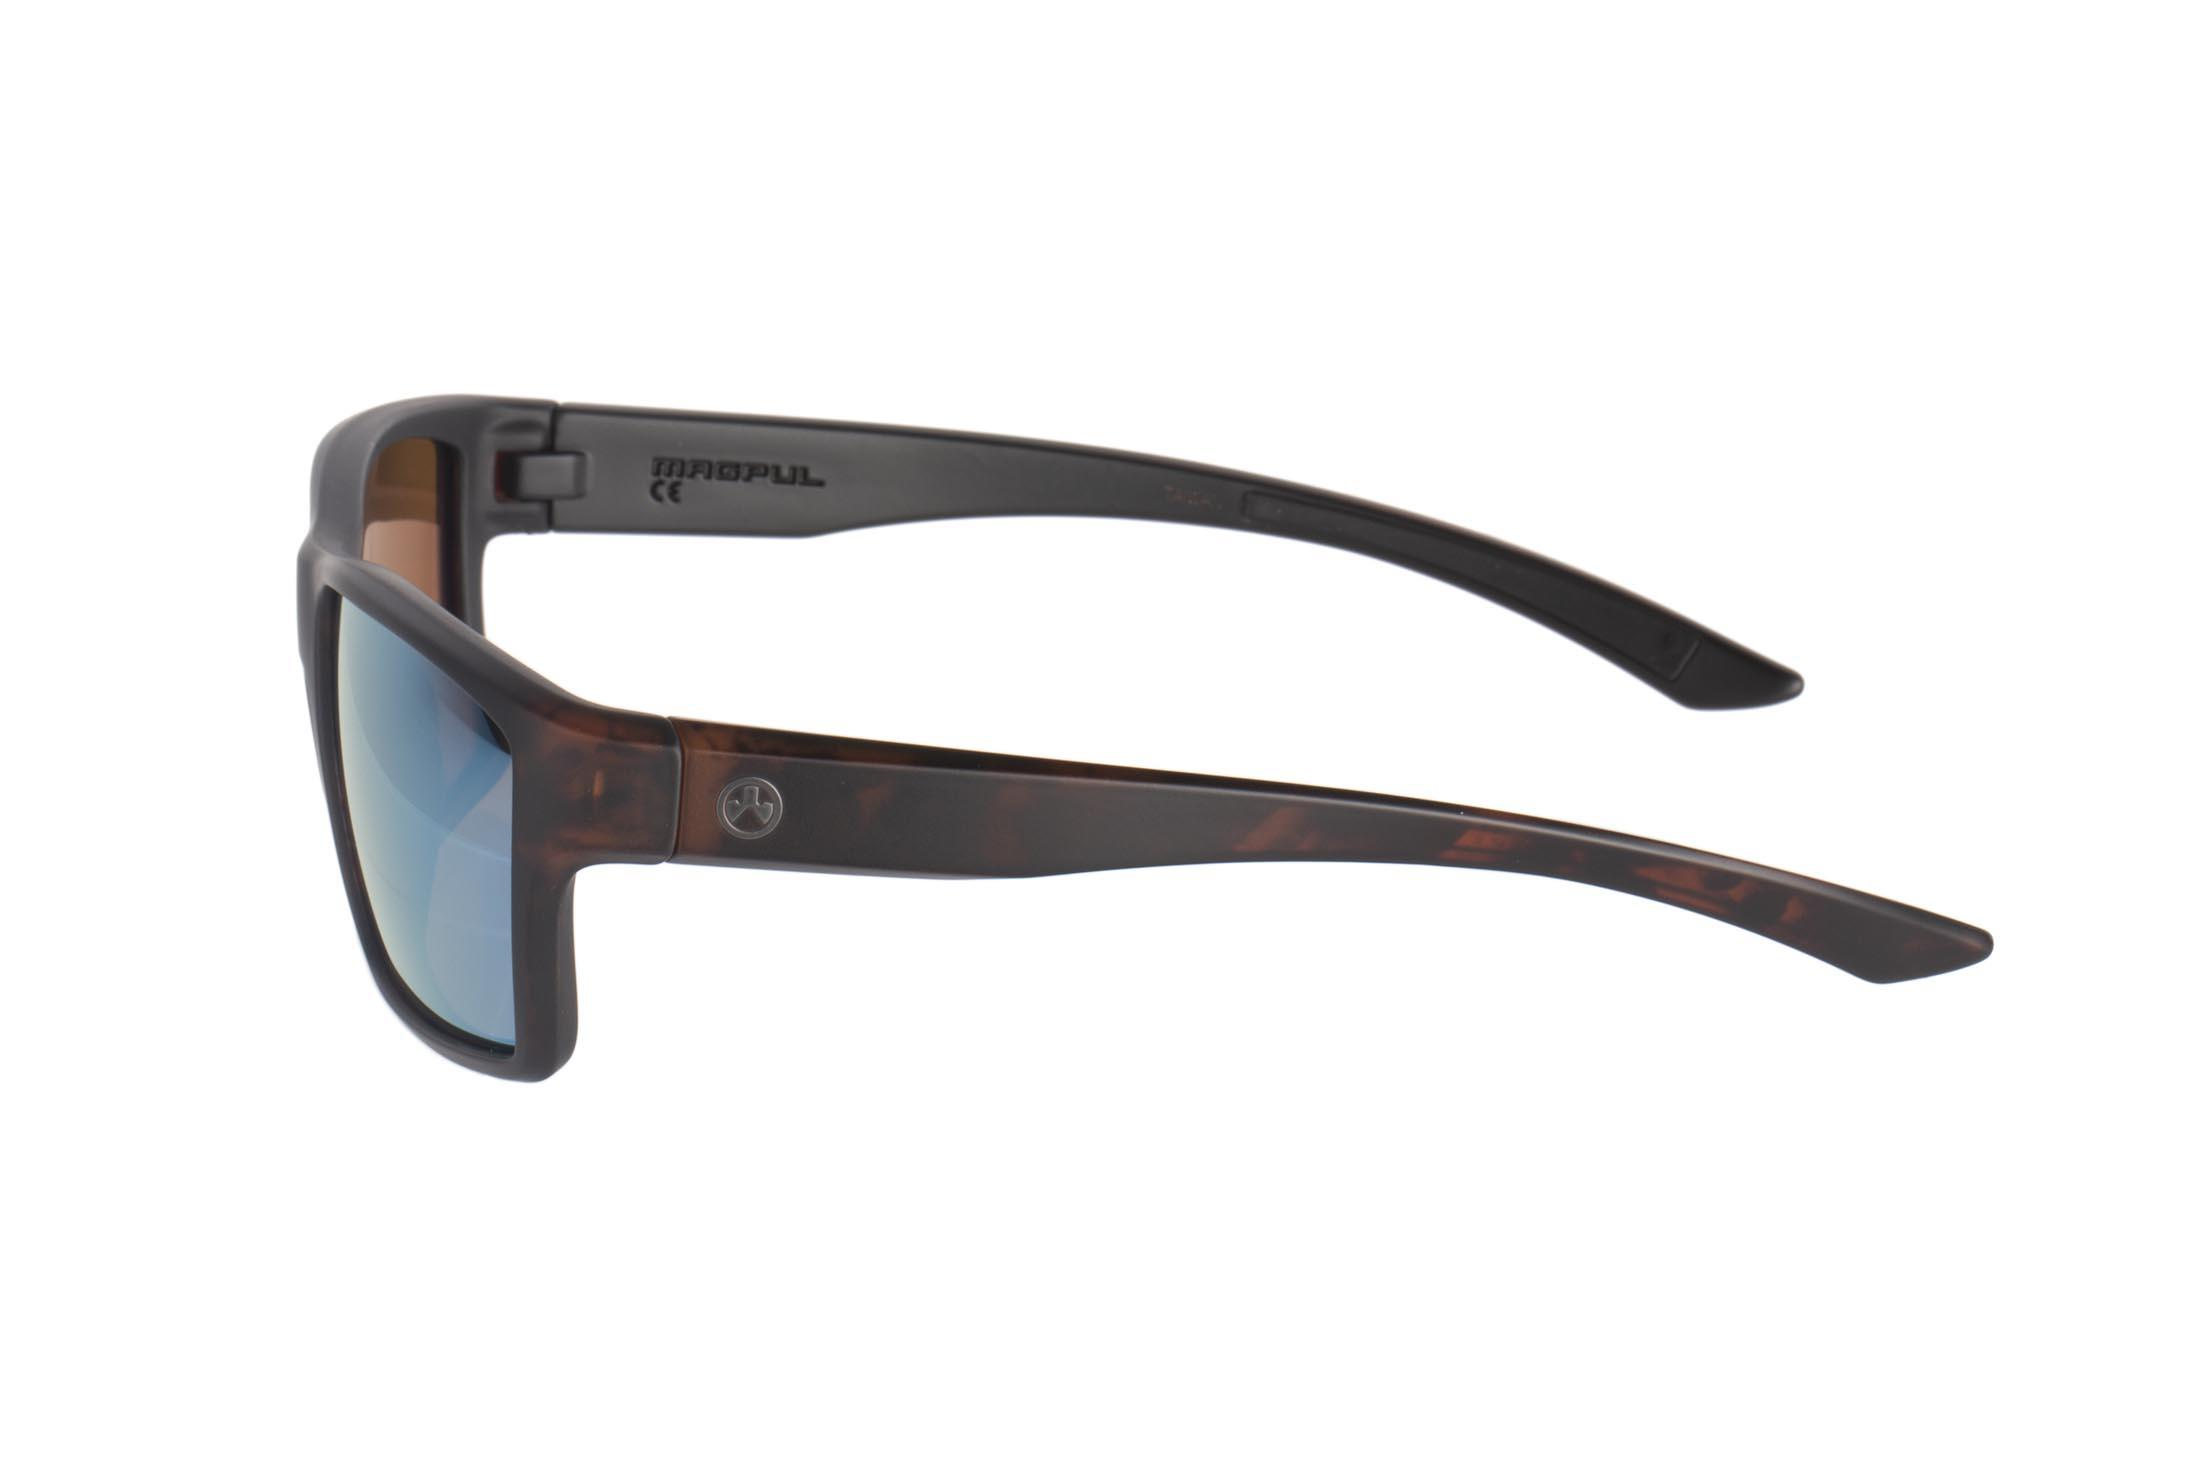 Magpul tortoise frame Explorer polarized sunglasses with bronze/blue lenses are stylish, yet Z87+ and MIL-PRF 32432 ballistic rated